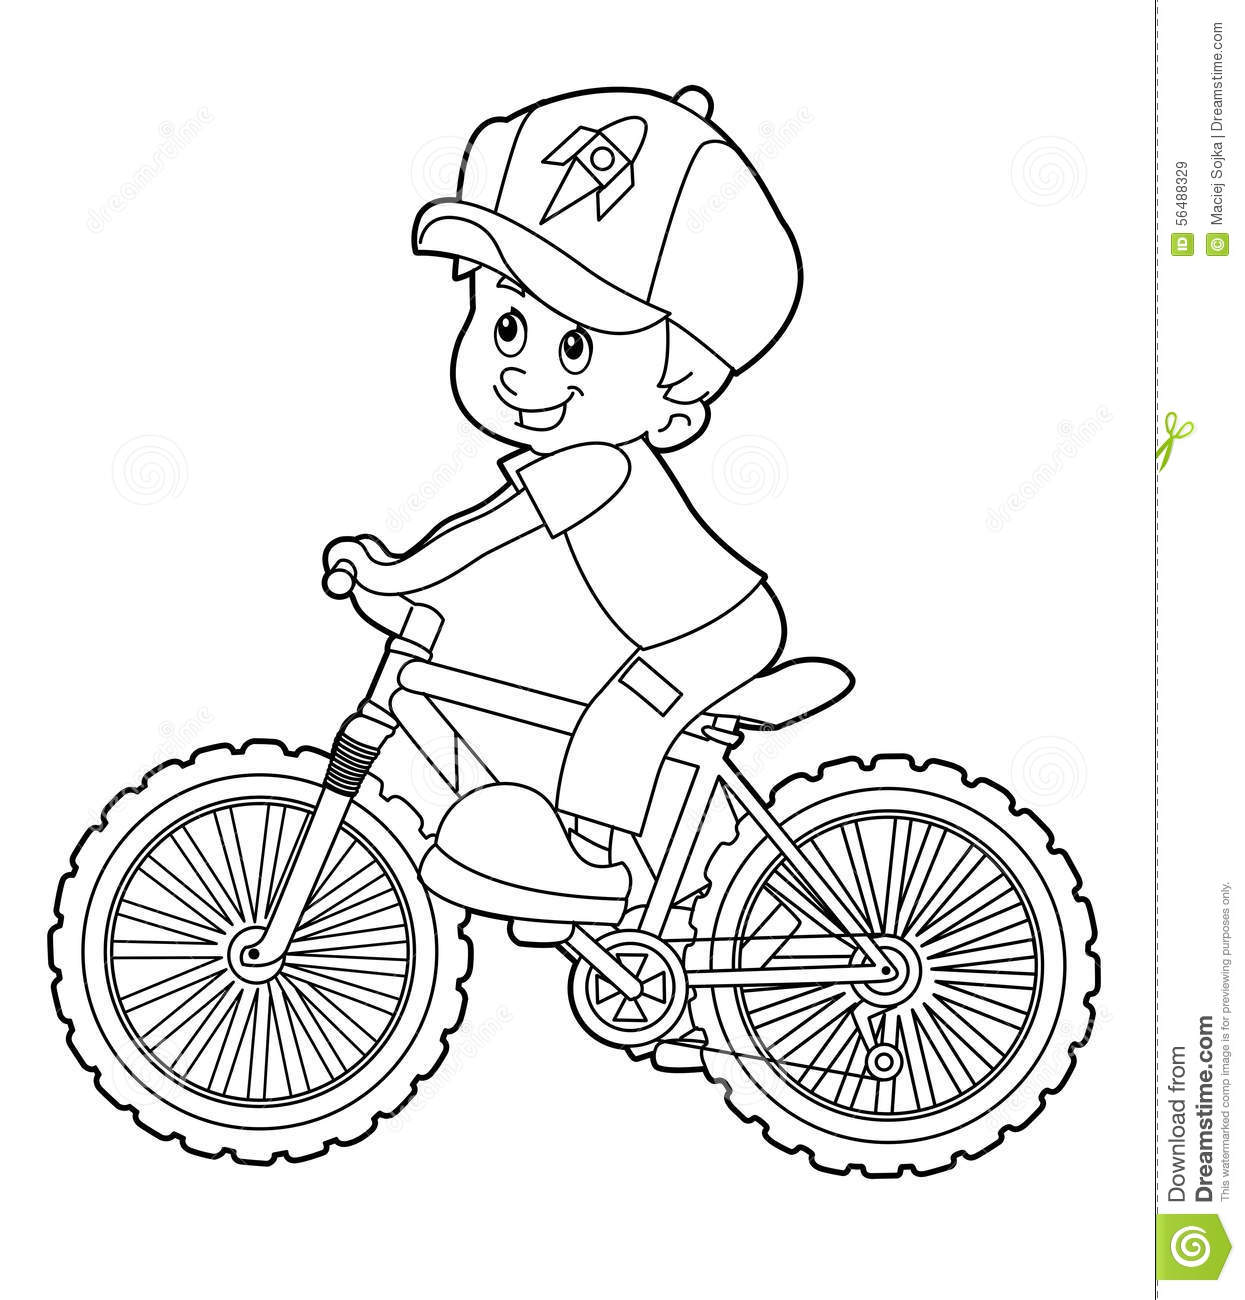 royalty free illustration - Bicycle Coloring Book